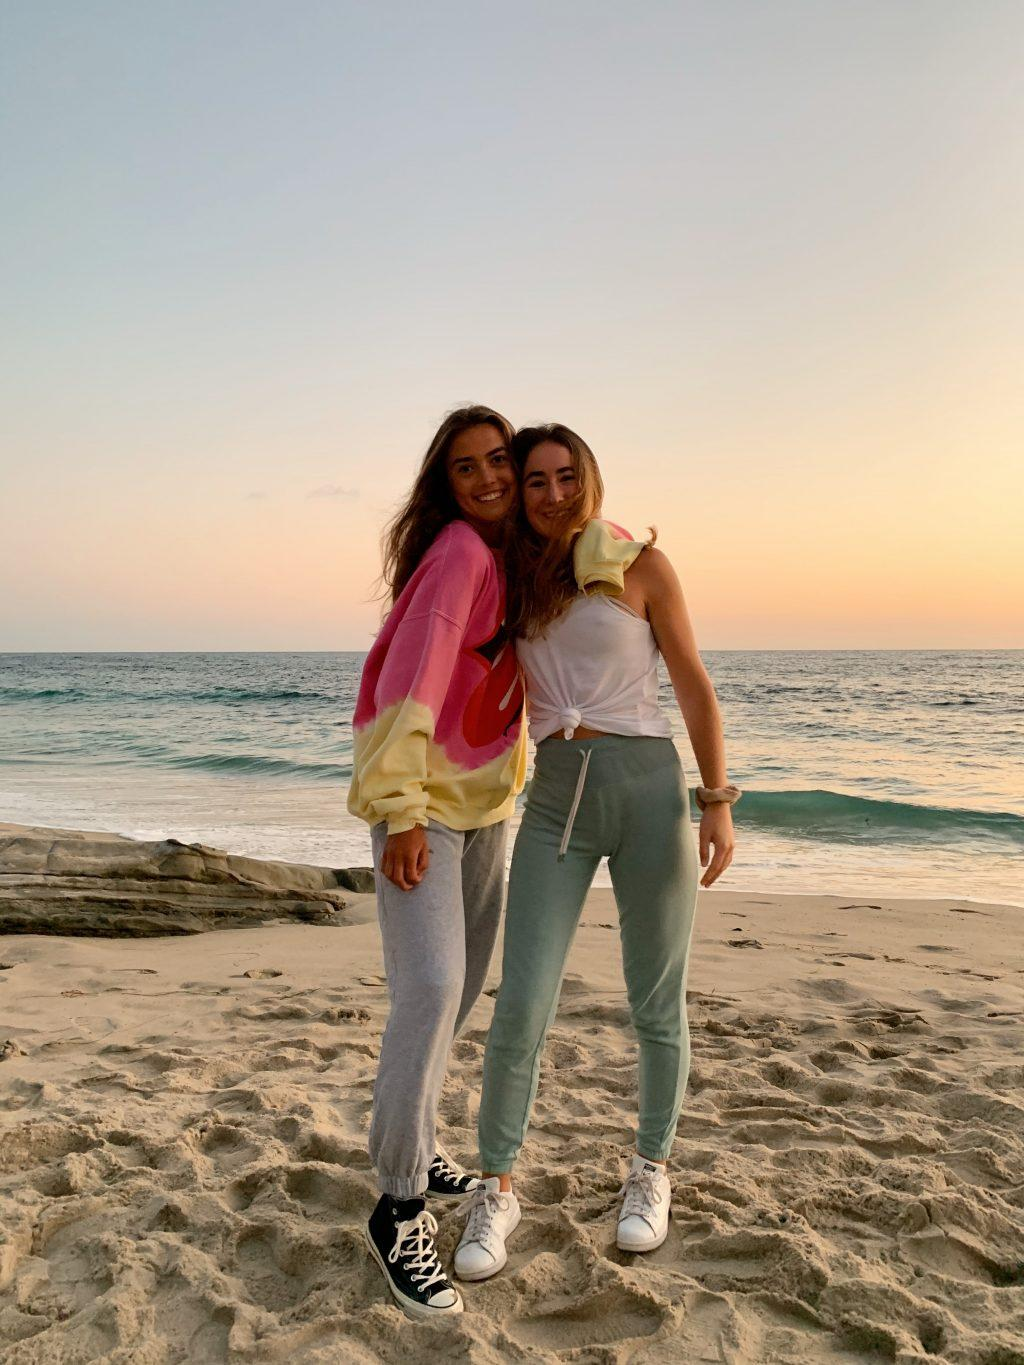 Ianni enjoys the sunset in Laguna Beach, Calif., with her friend Sophia in August. Ianni said the beach is her happy place and is where she feels most connected to God.